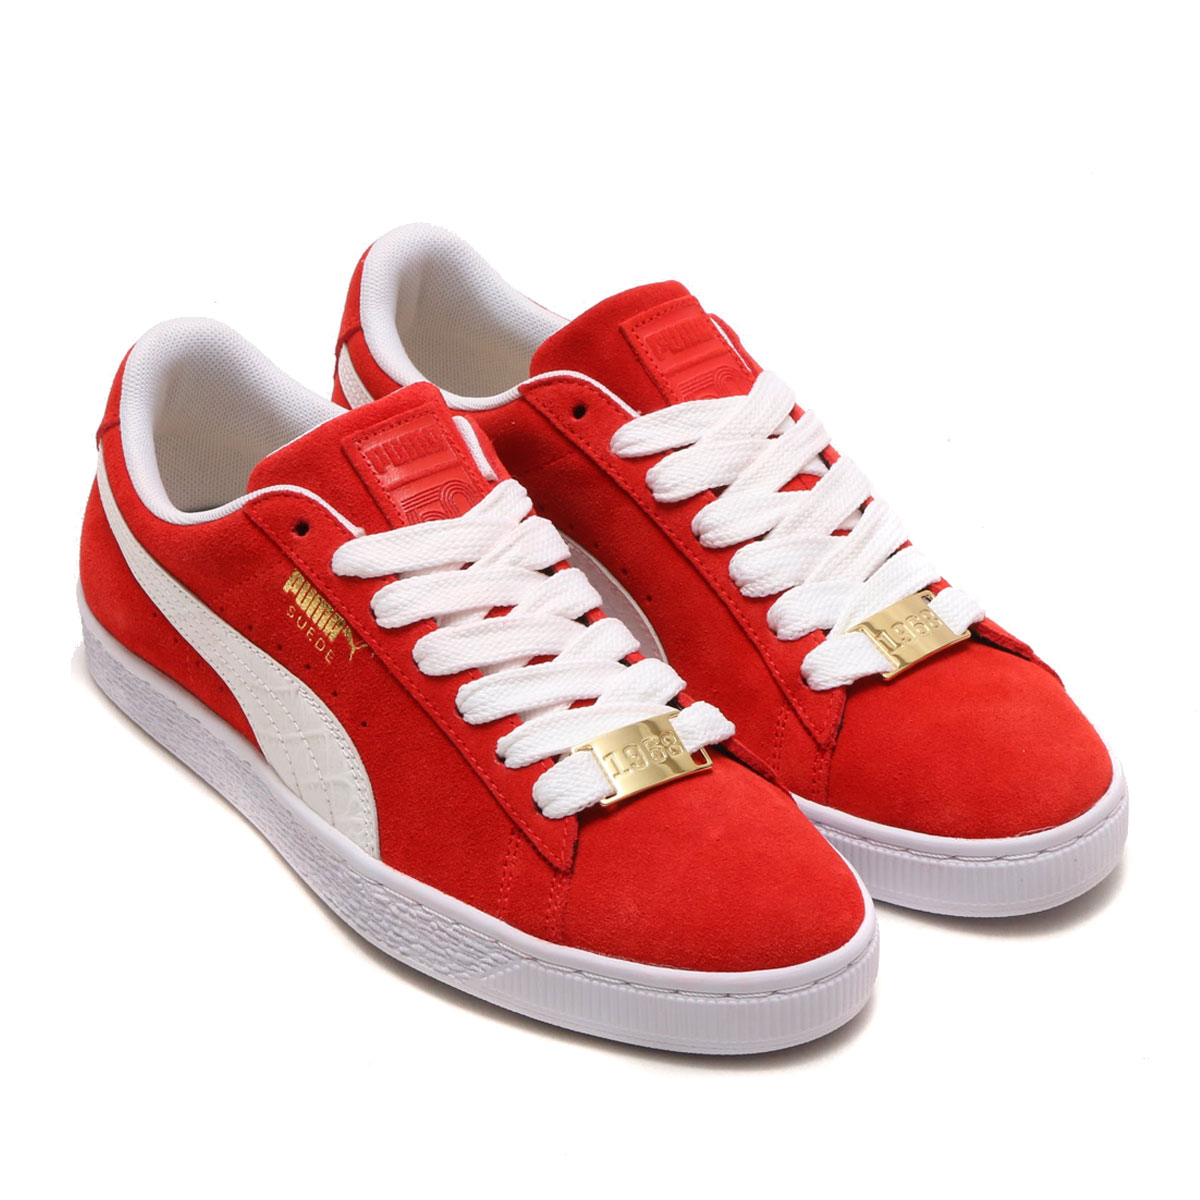 new styles 357e5 cab18 PUMA SUEDE CLASSIC B-BOY FABULOUS (プーマスエードクラシックビーボーイファビュラス) (FLAME SCARLET-  PUMA WHITE) 18SP-I